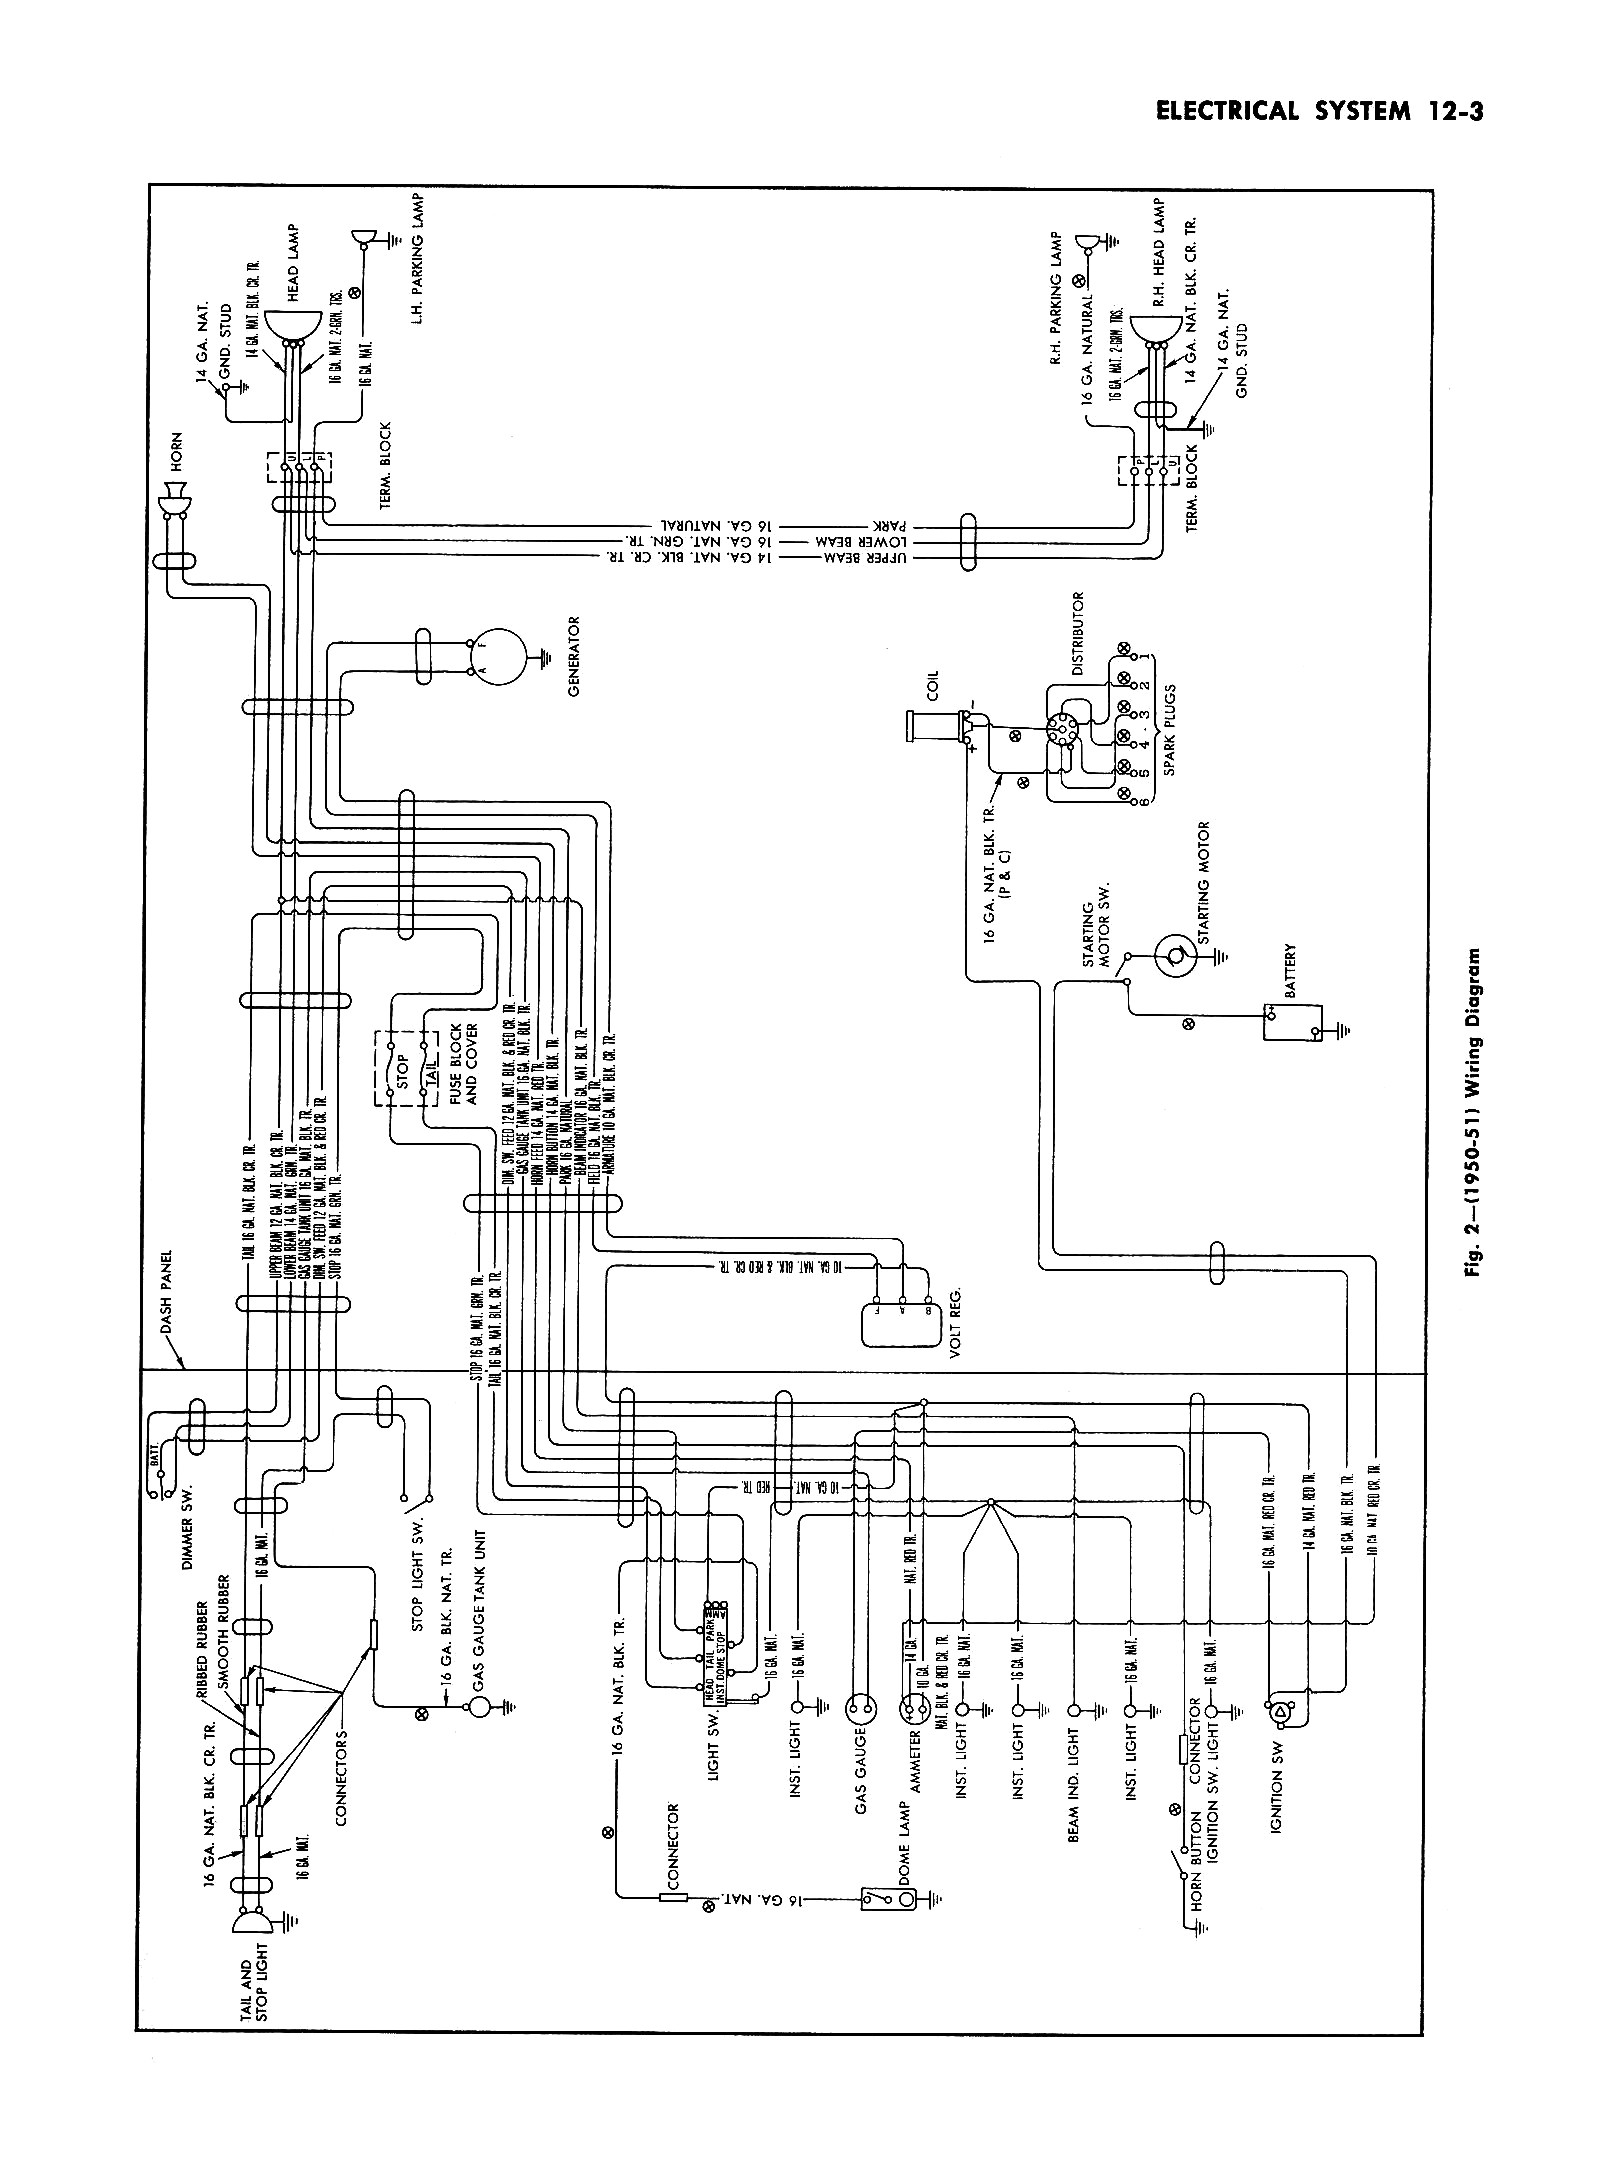 50car1 chevy wiring diagrams 1953 Ford Car Wiring Diagram at crackthecode.co